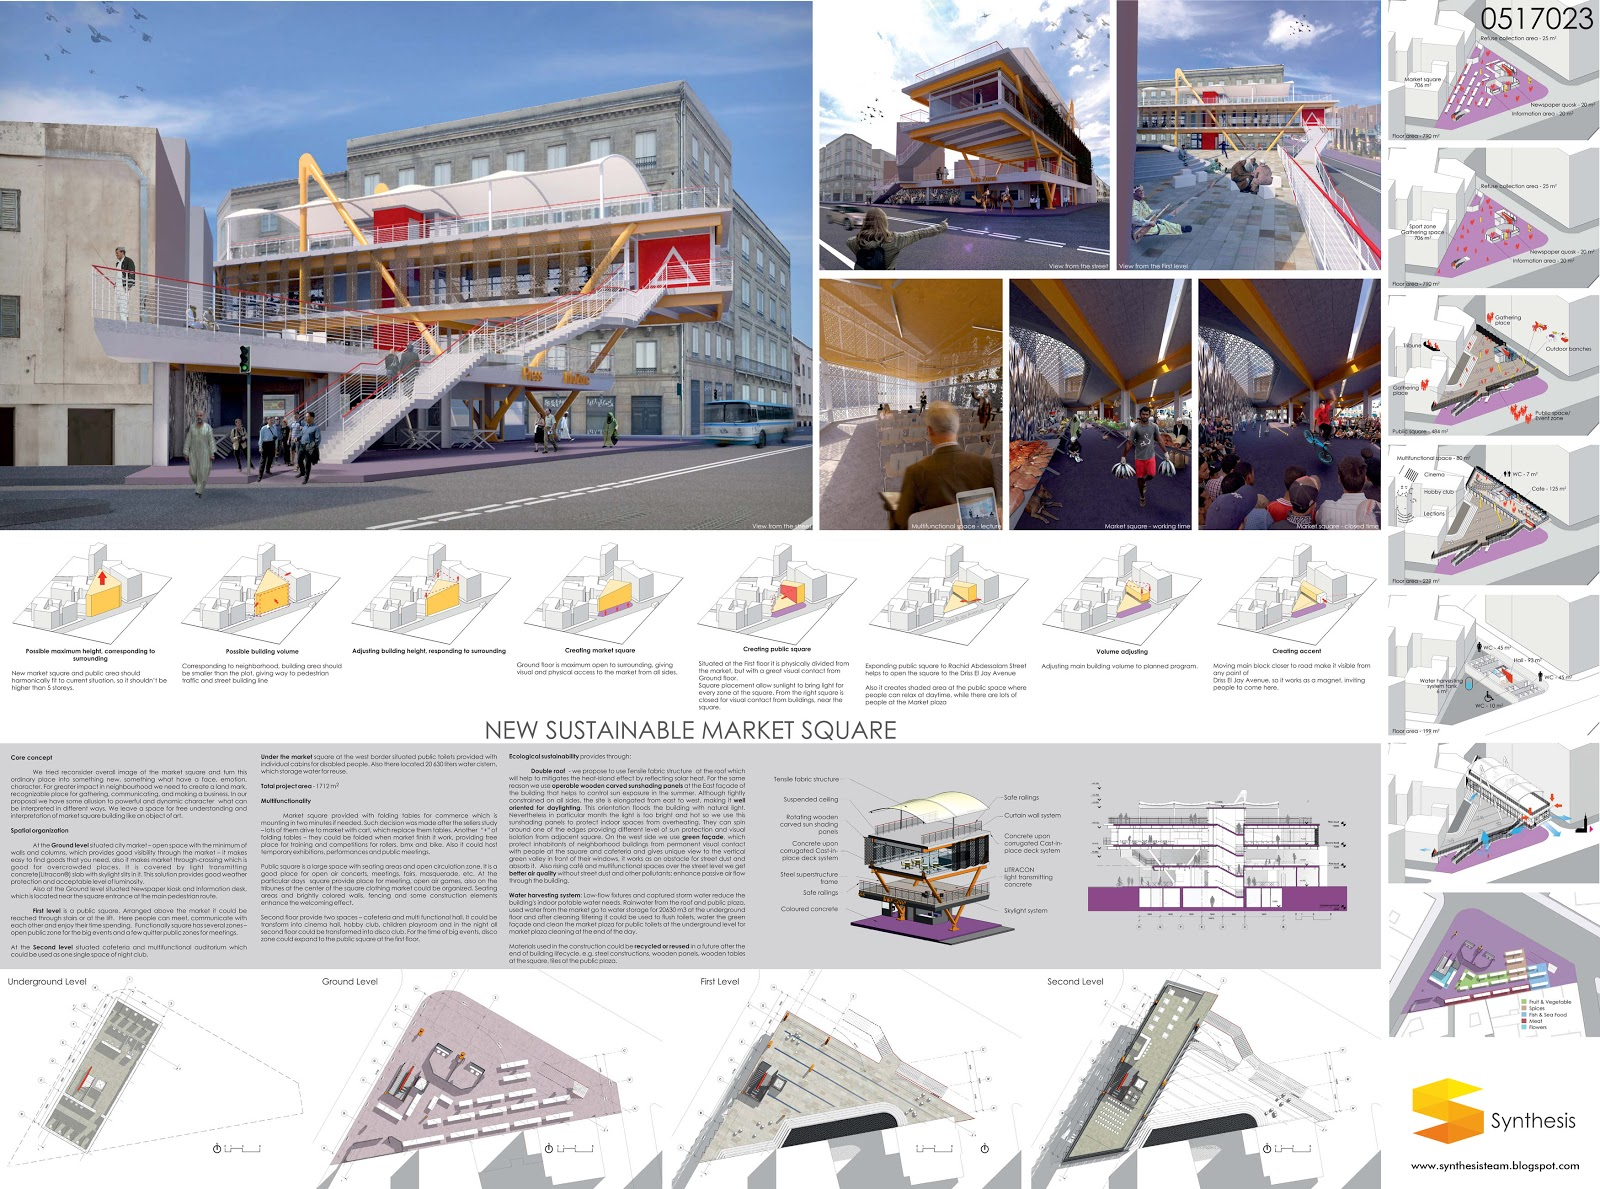 a proposal and study for the enhanced design of a yokai character In turn has the potential to lead to an enhanced urban design, visual and landscape the potential impacts of the proposal on the character and sense of place of the study the development of urban design principles for the study area.